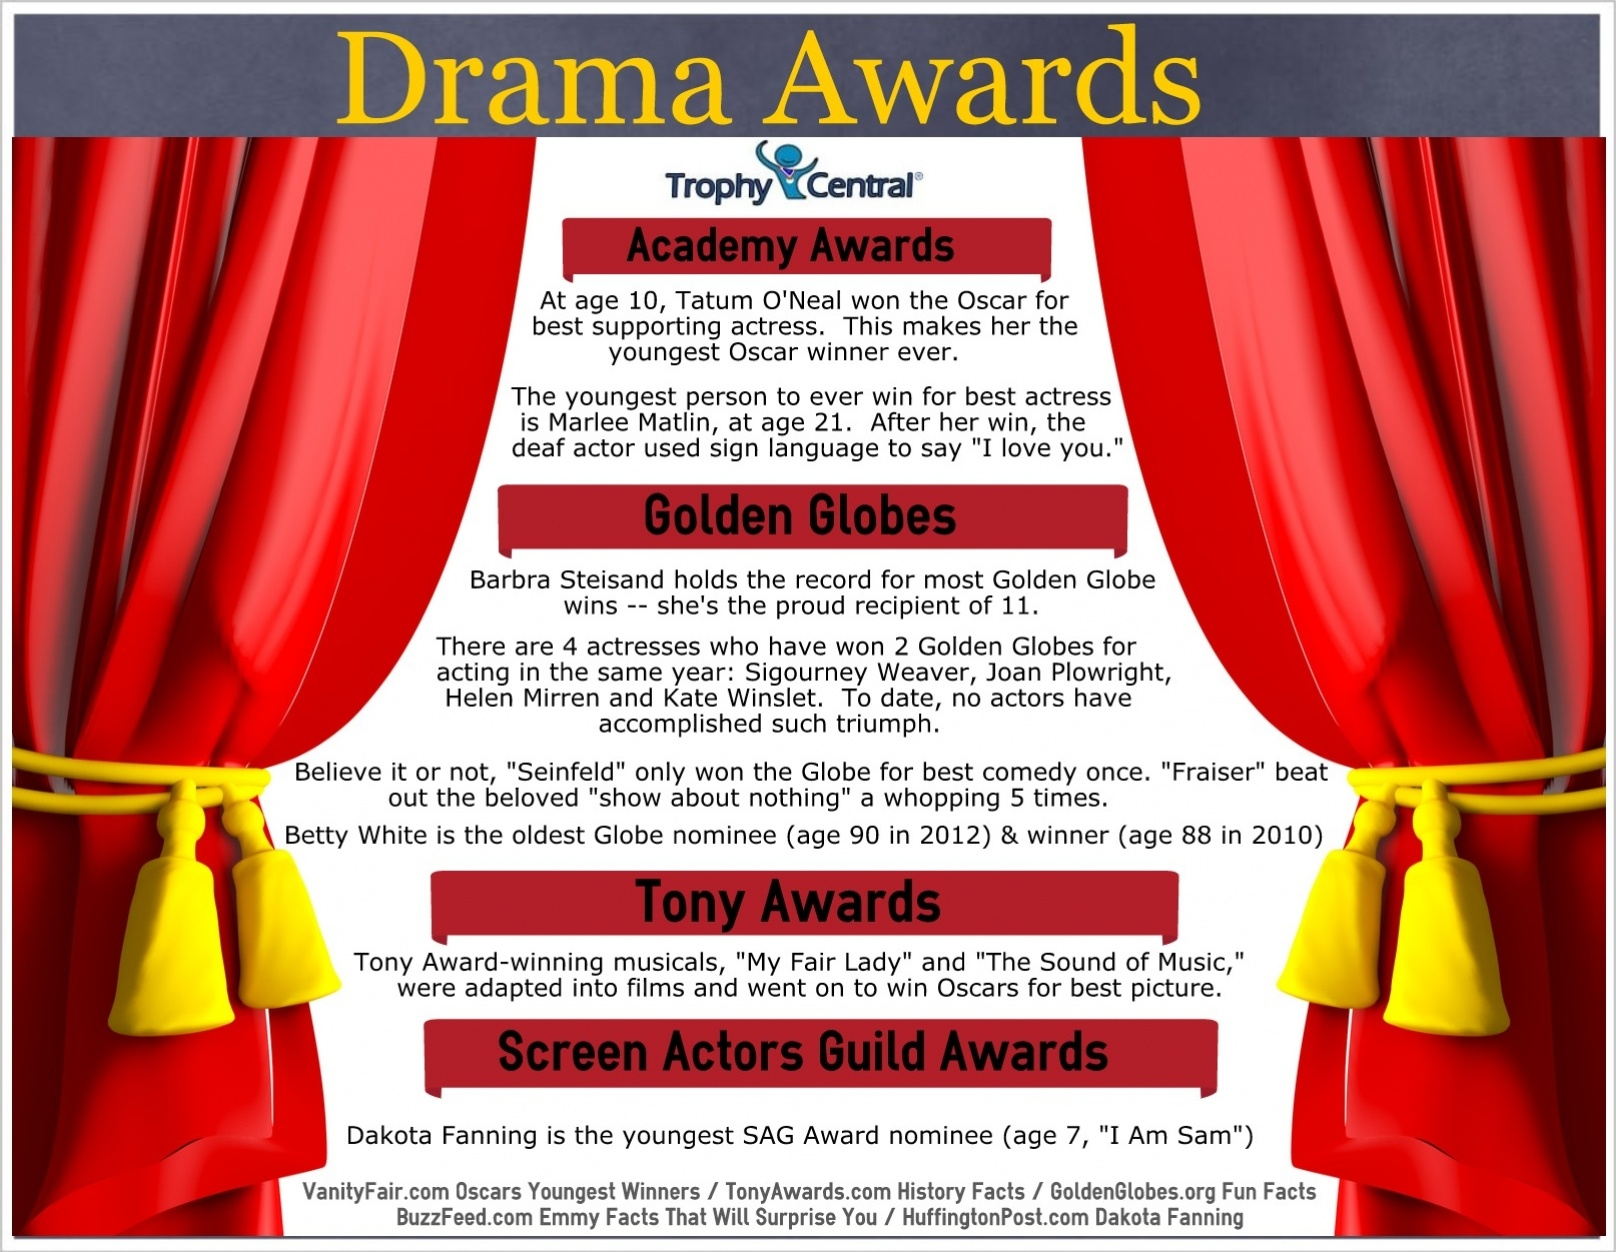 Drama Awards Facts & Trivia